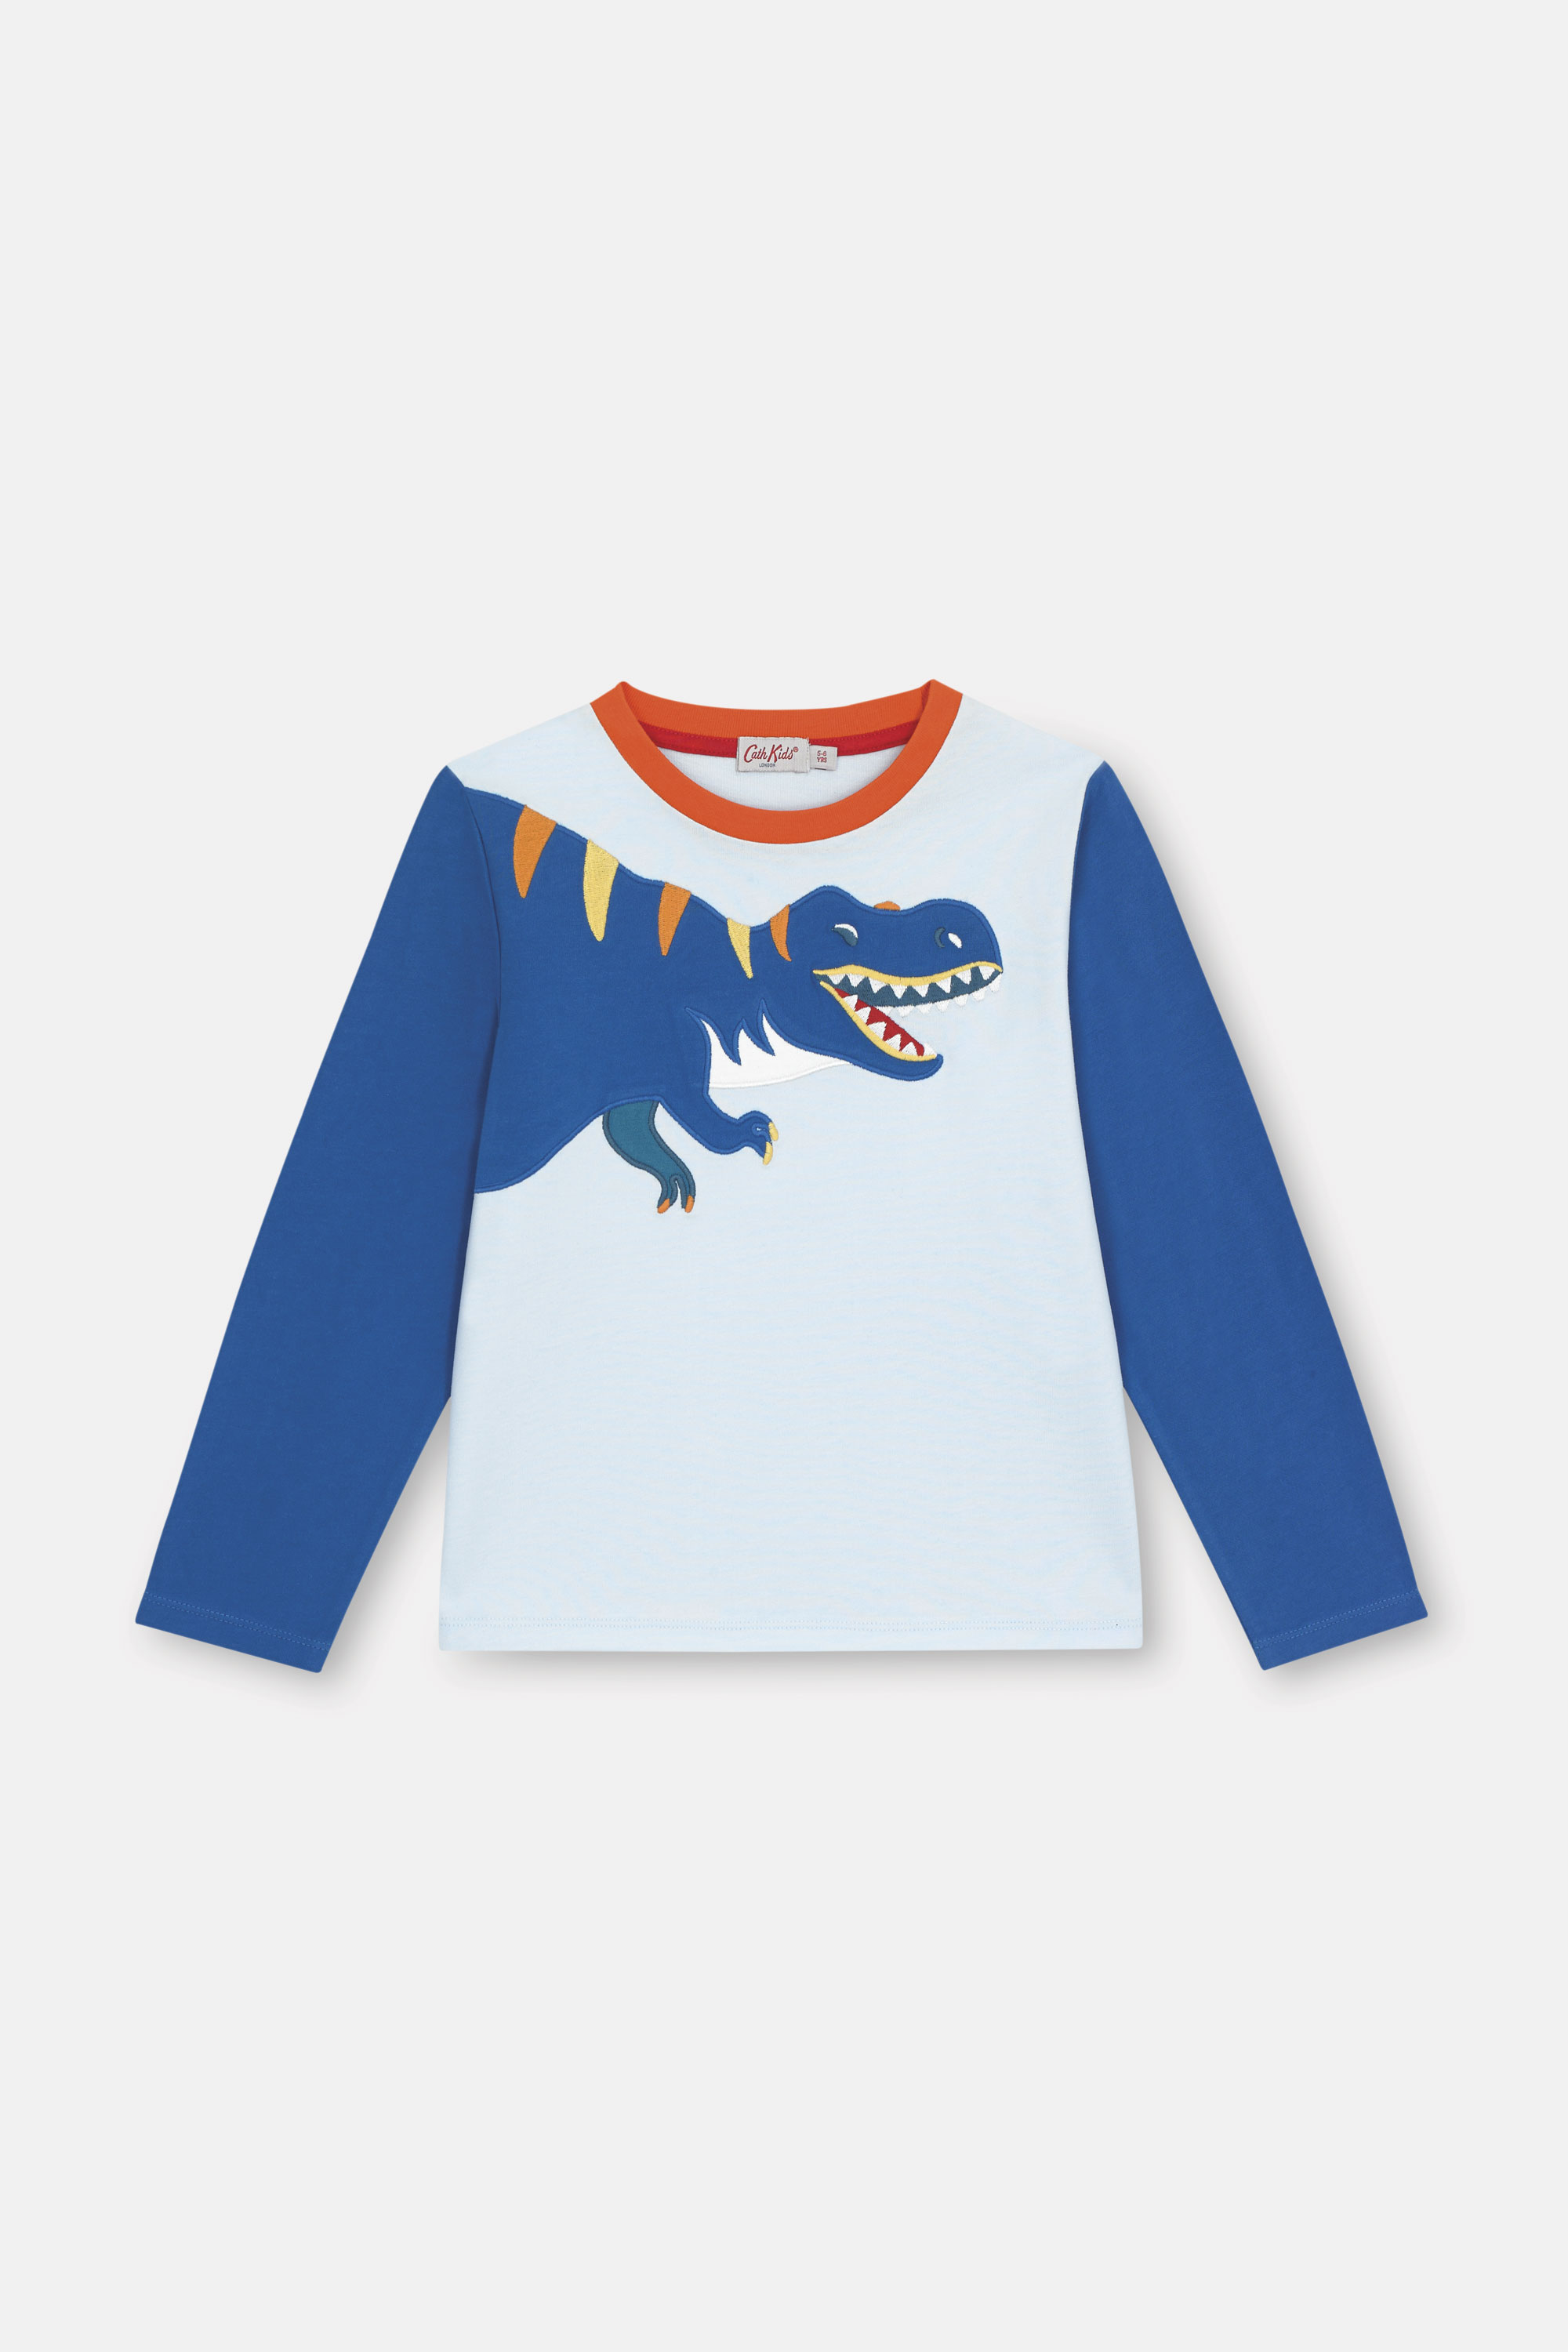 Cath Kidston Dinosaur Jungle Long Sleeve Everyday T-Shirt in Blue, 3-4 yr